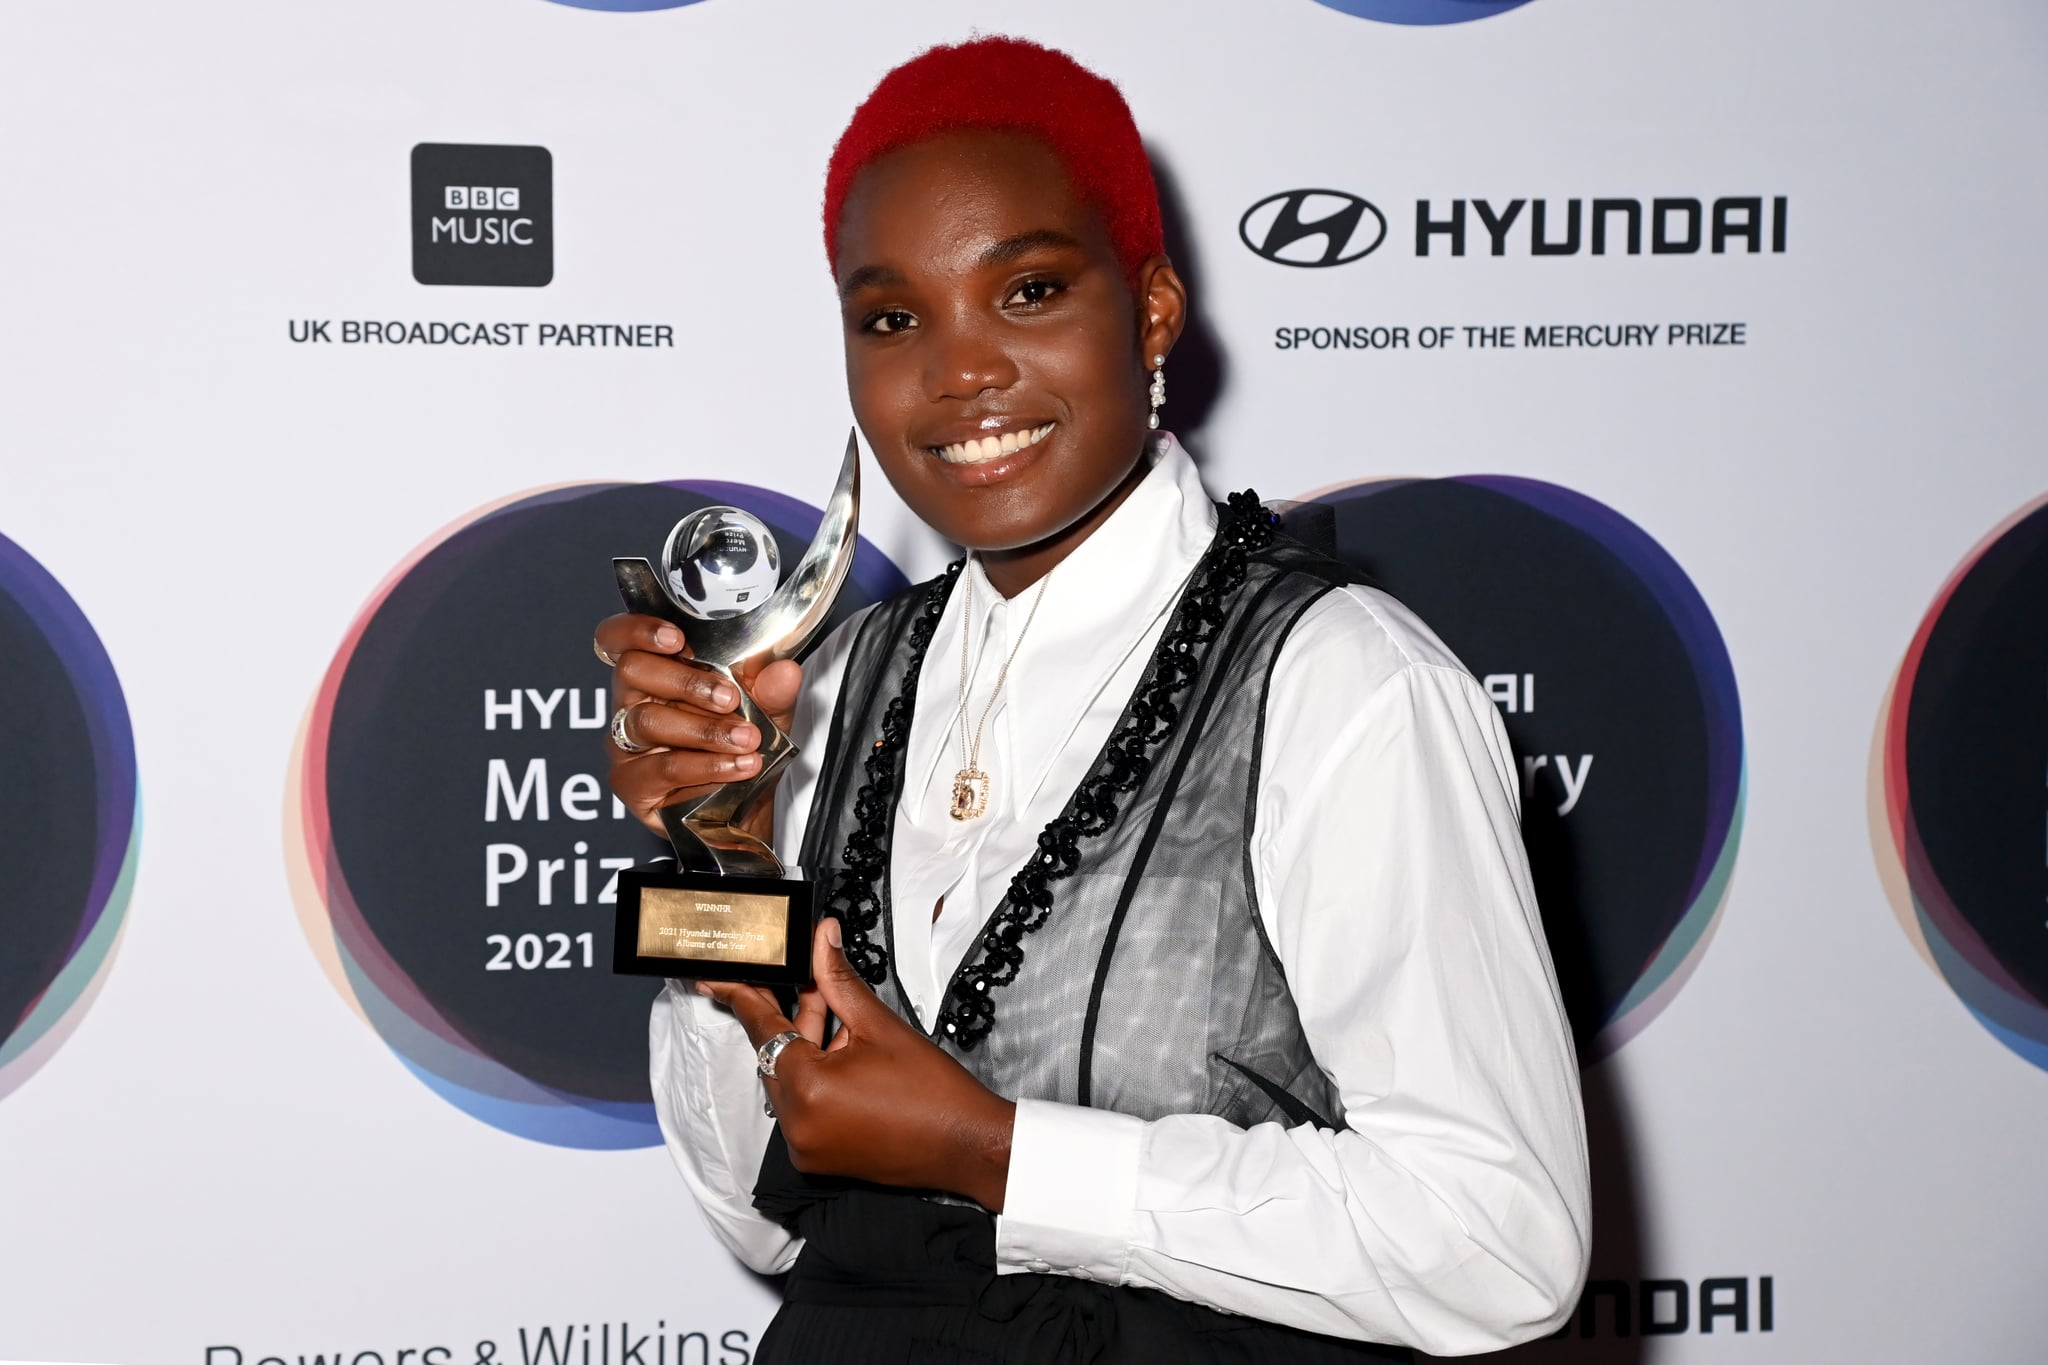 LONDON, ENGLAND - SEPTEMBER 09: (Editorial use only in relation to event) Arlo Parks after winning the Hyundai Mercury Music Prize 2021 at Eventim Apollo, Hammersmith on September 09, 2021 in London, England. (Photo by Dave J Hogan/Getty Images)